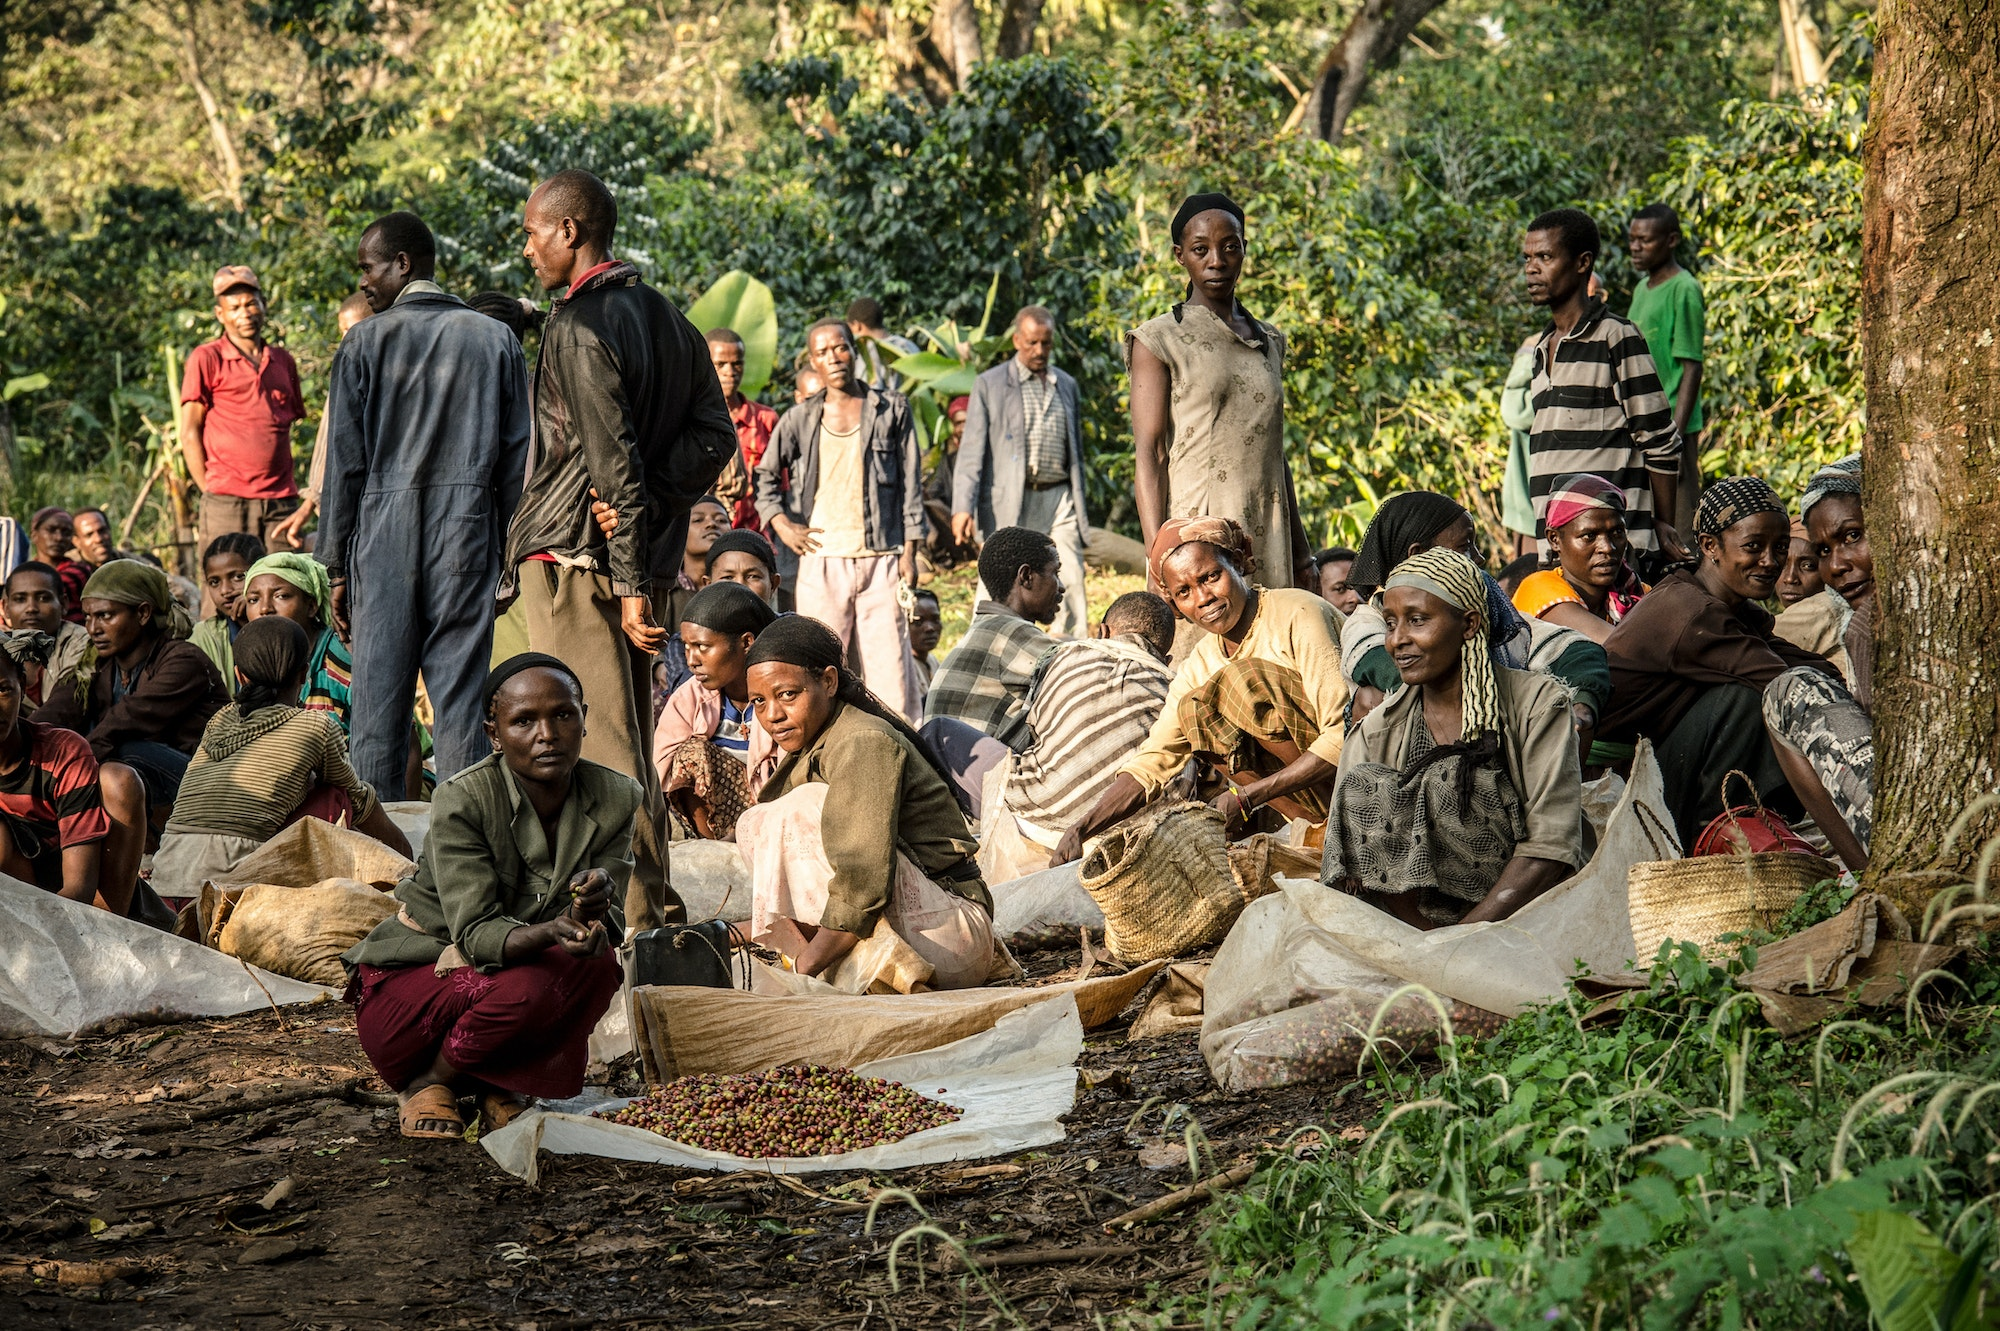 Workers harvest coffee beans at the Teppi Plantation in Kaffa, Ethiopia.